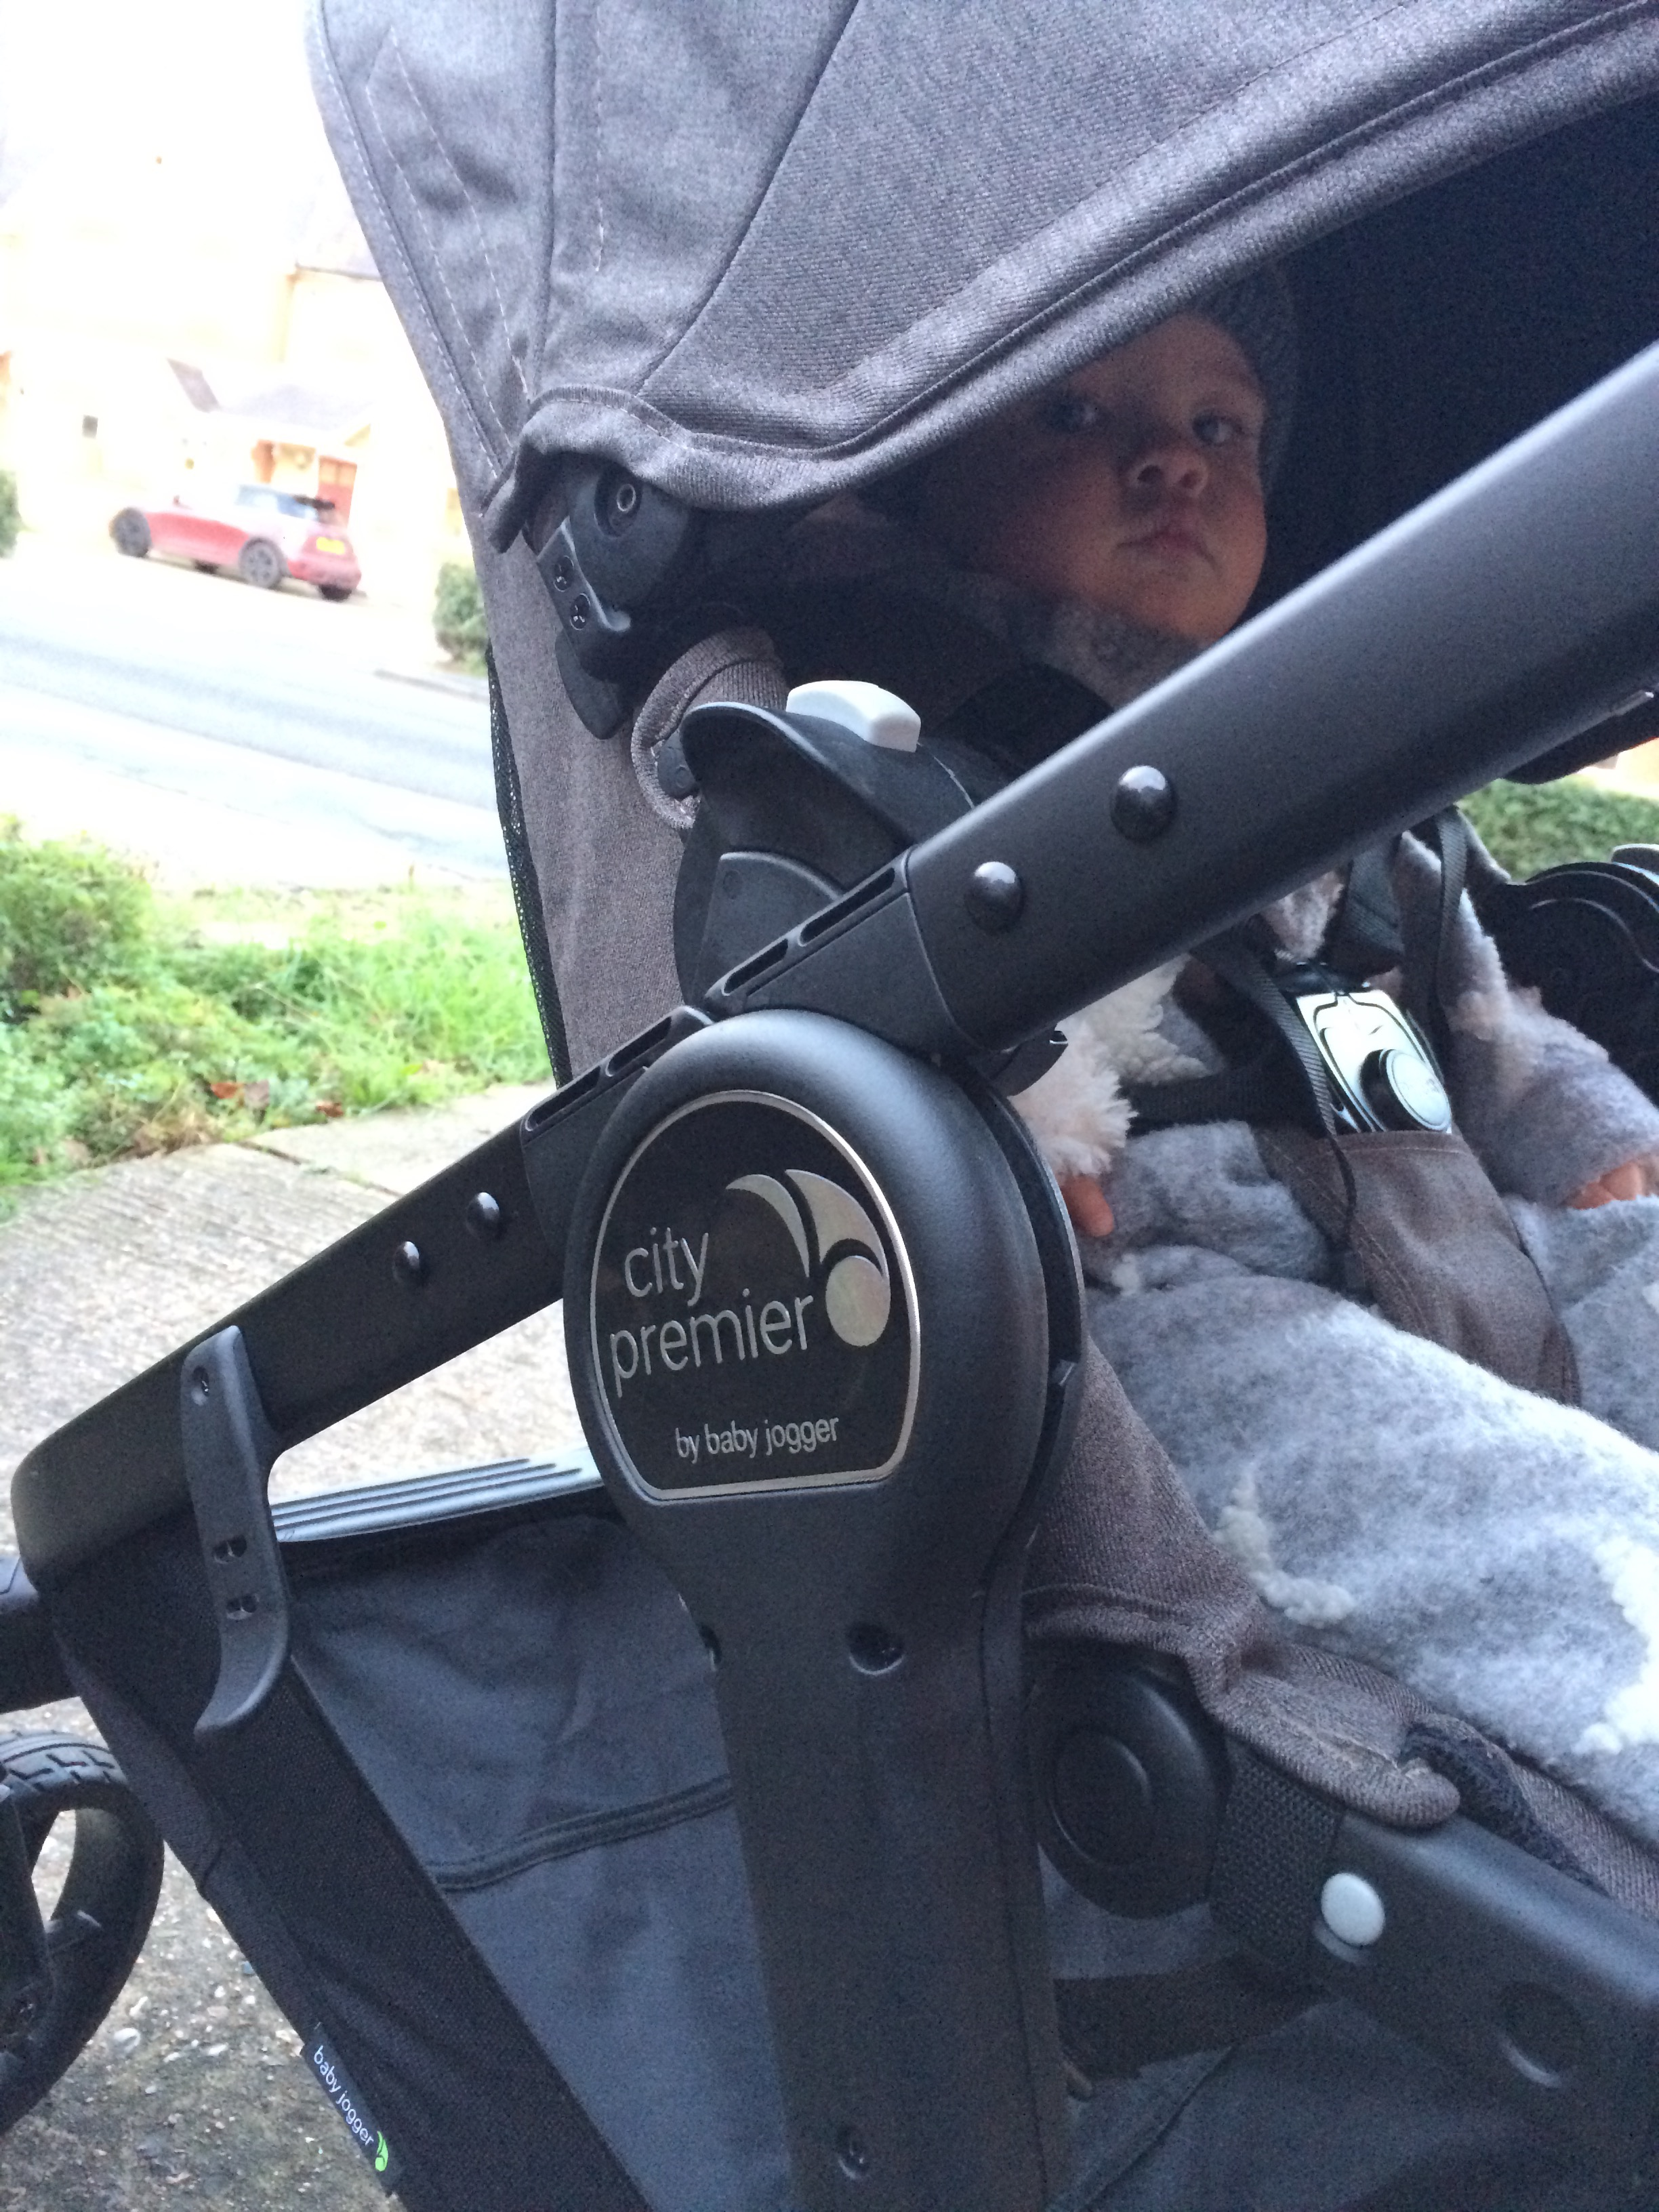 baby jogger city premier close up